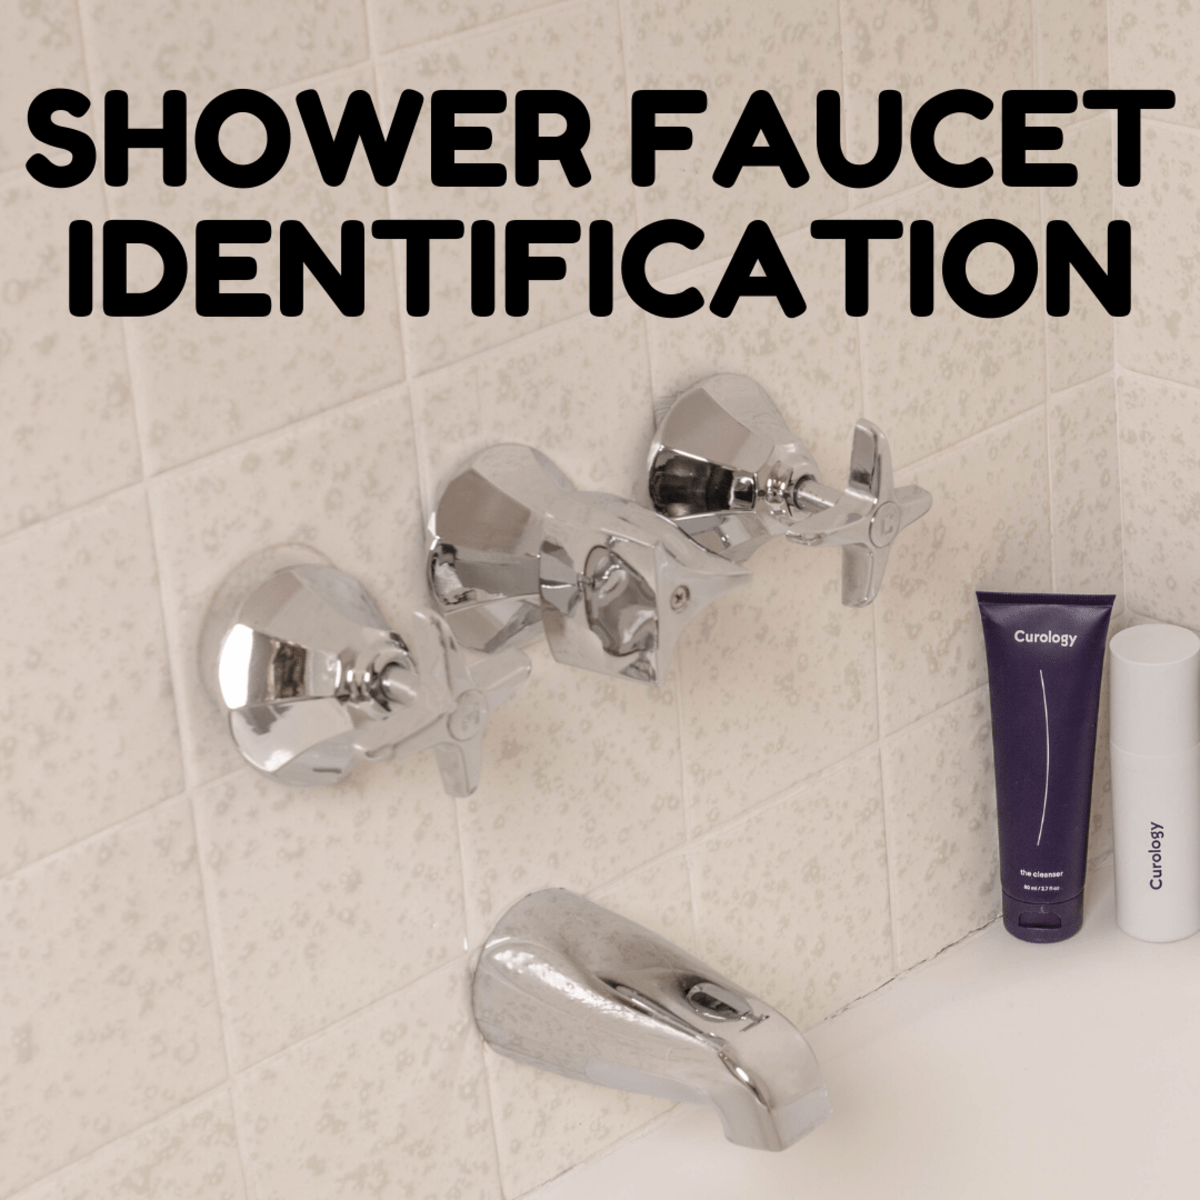 How To Identify Shower Faucet Cartridge Type And Brand Dengarden Home And Garden